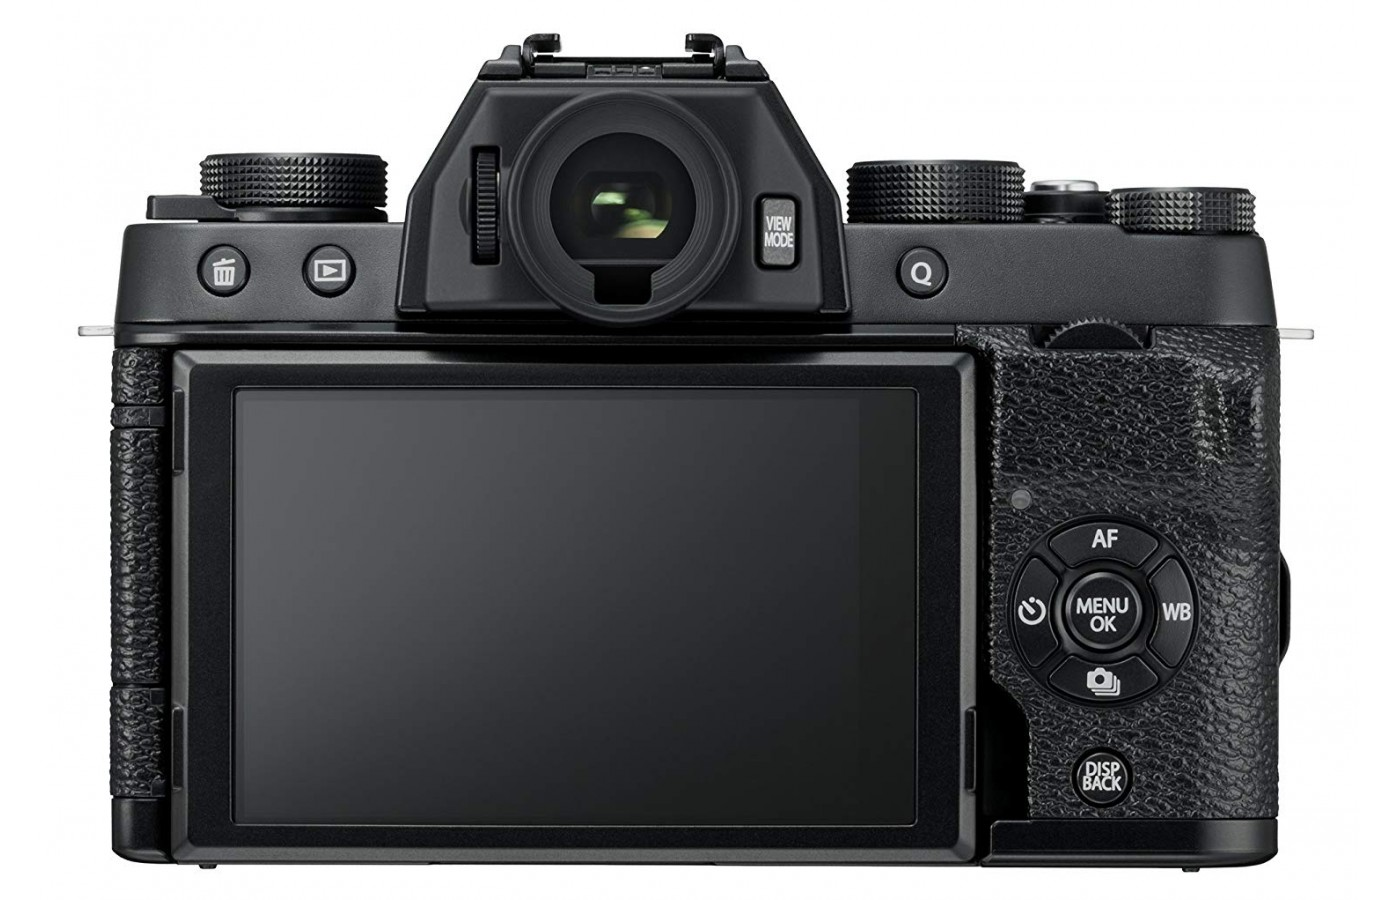 A lot of people liked this camera's design.